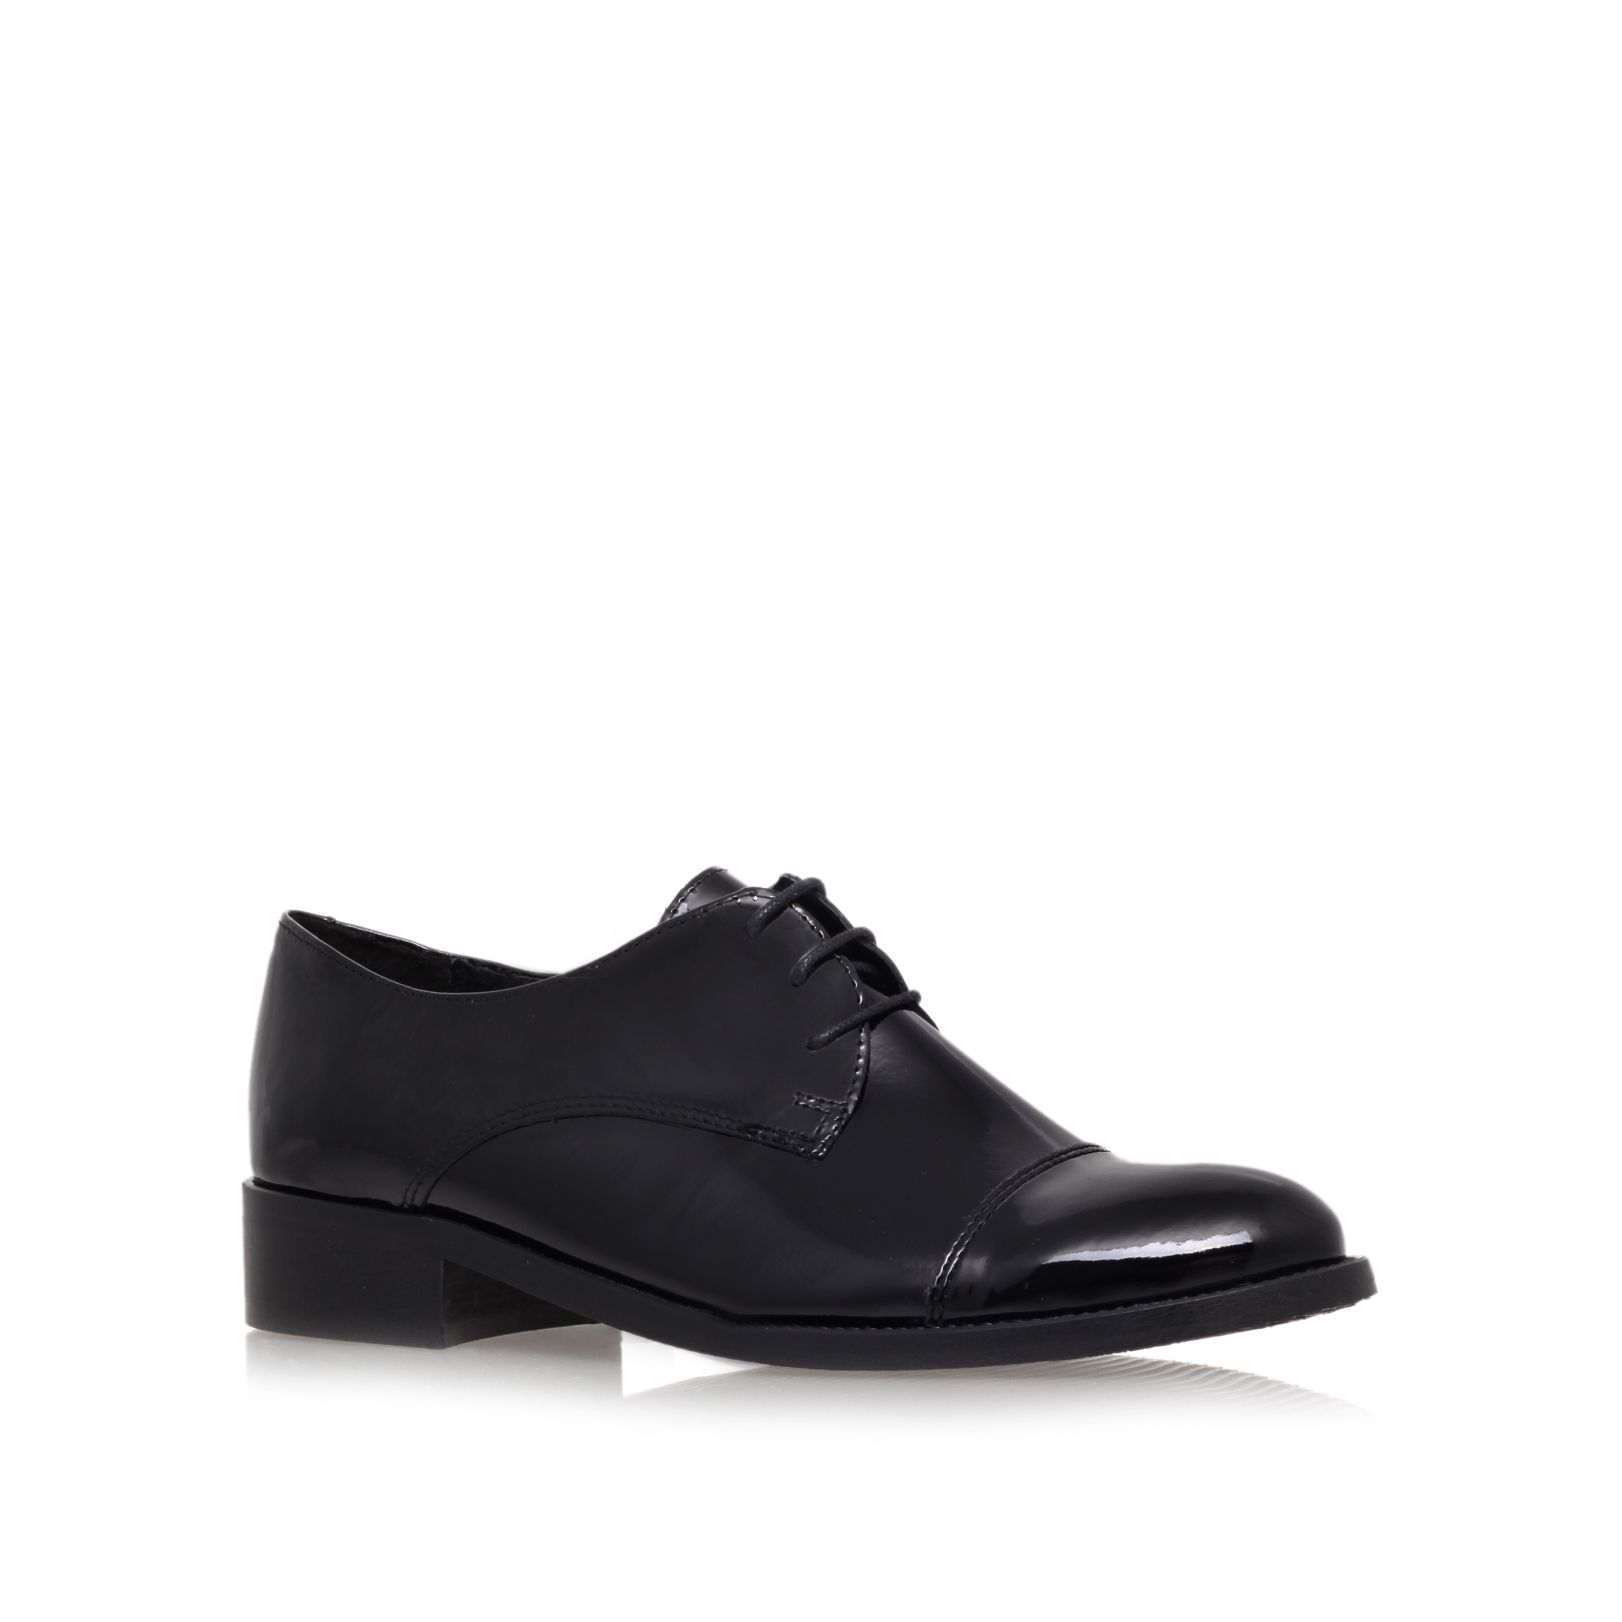 Lance flat lace-up shoes